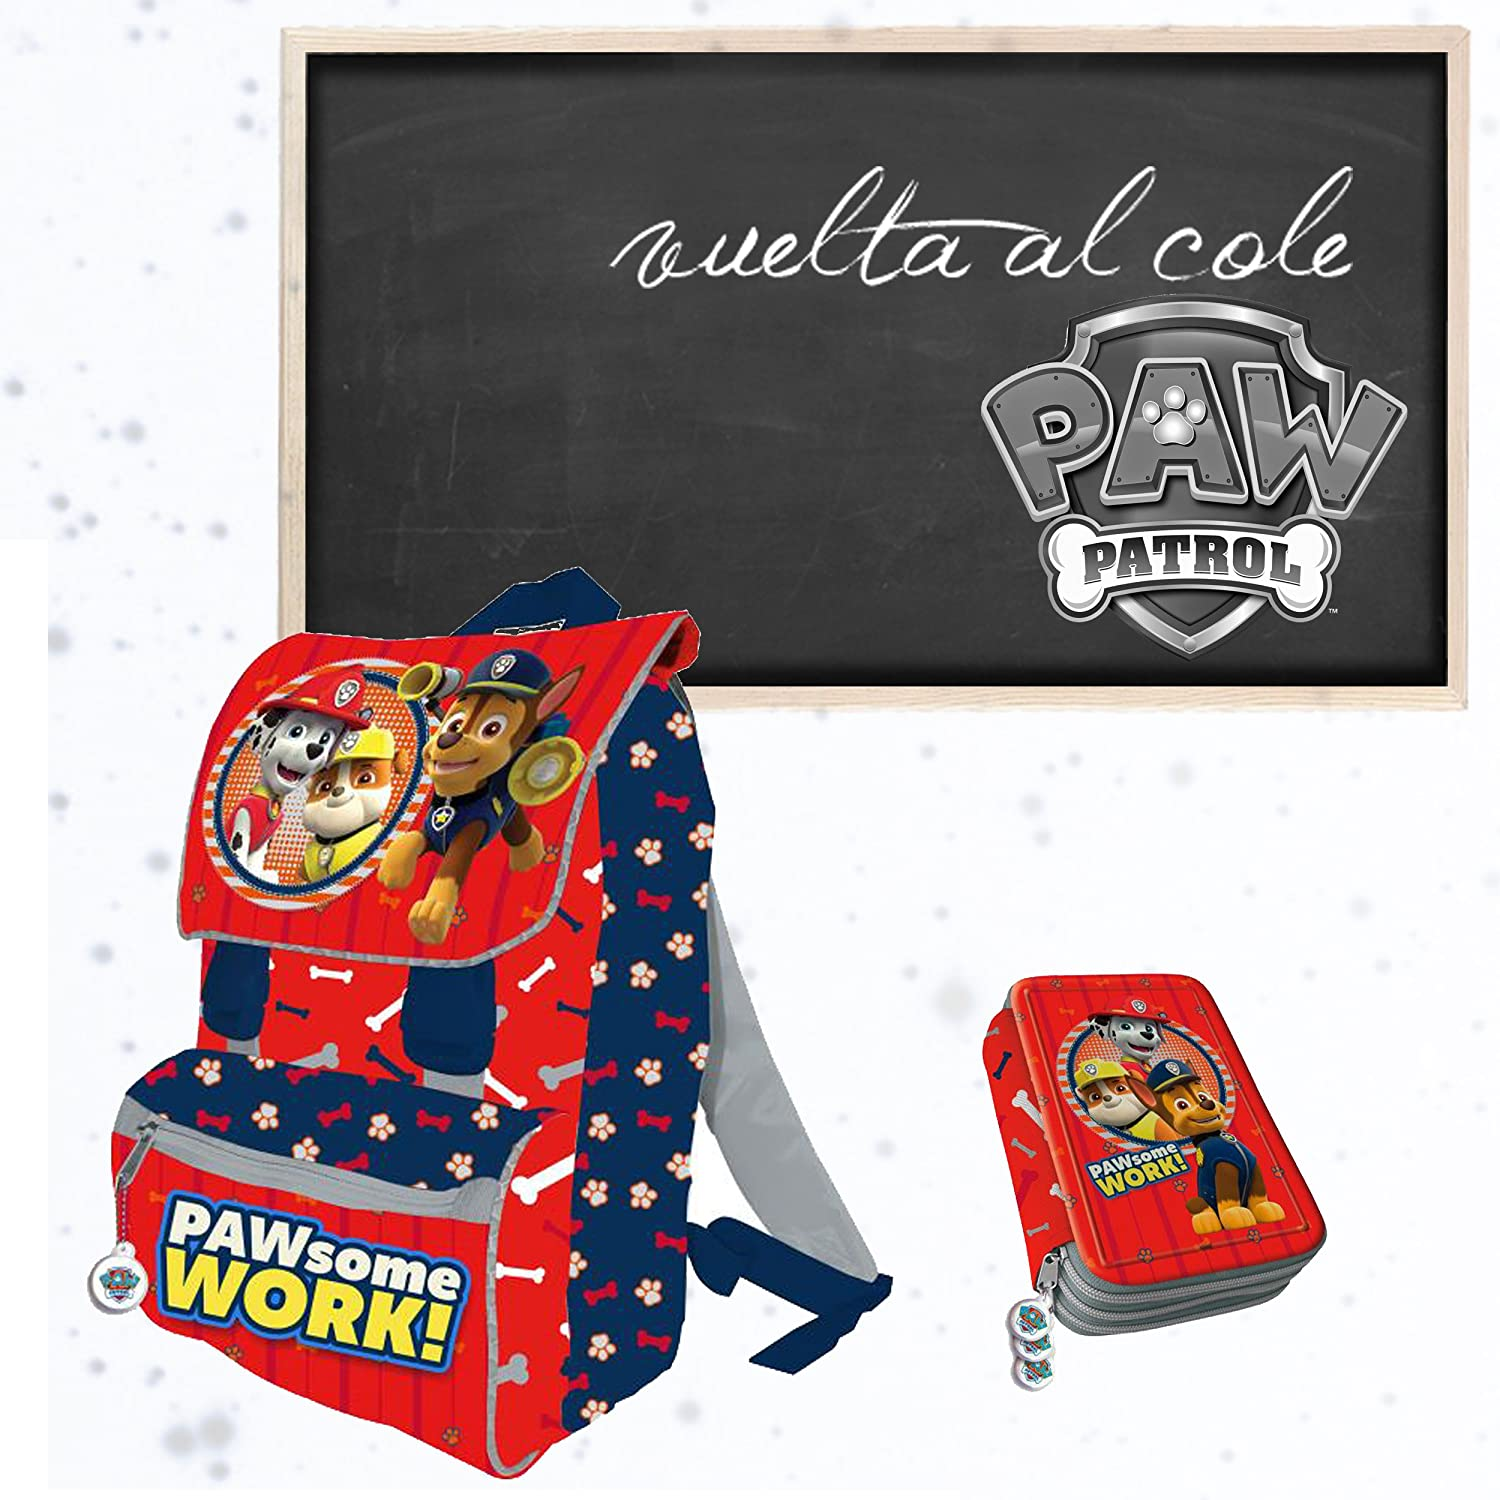 Plumier Patrulla Canina Paw Some Work Triple